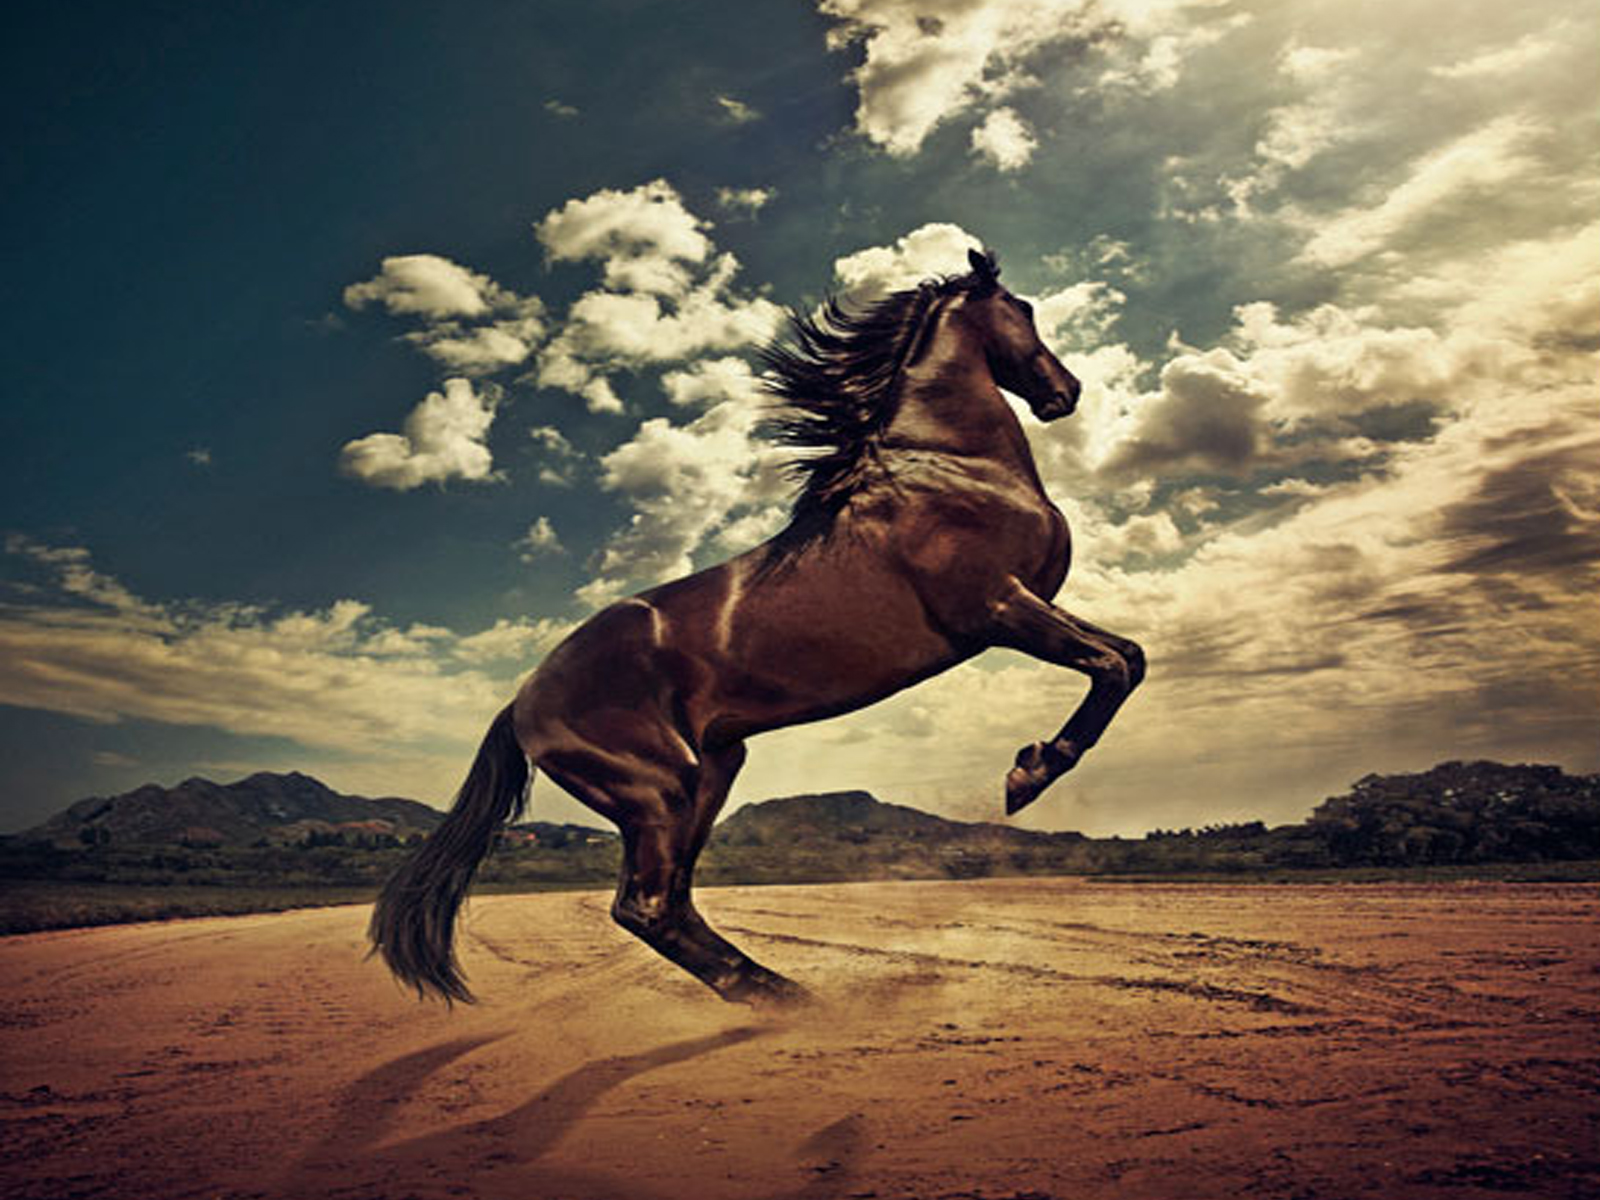 http://2.bp.blogspot.com/-xurpT5q8x98/TsqBxiViFVI/AAAAAAAAAhM/QT-E8U6_tx8/s1600/The-best-top-desktop-horse-wallpapers-25.jpg